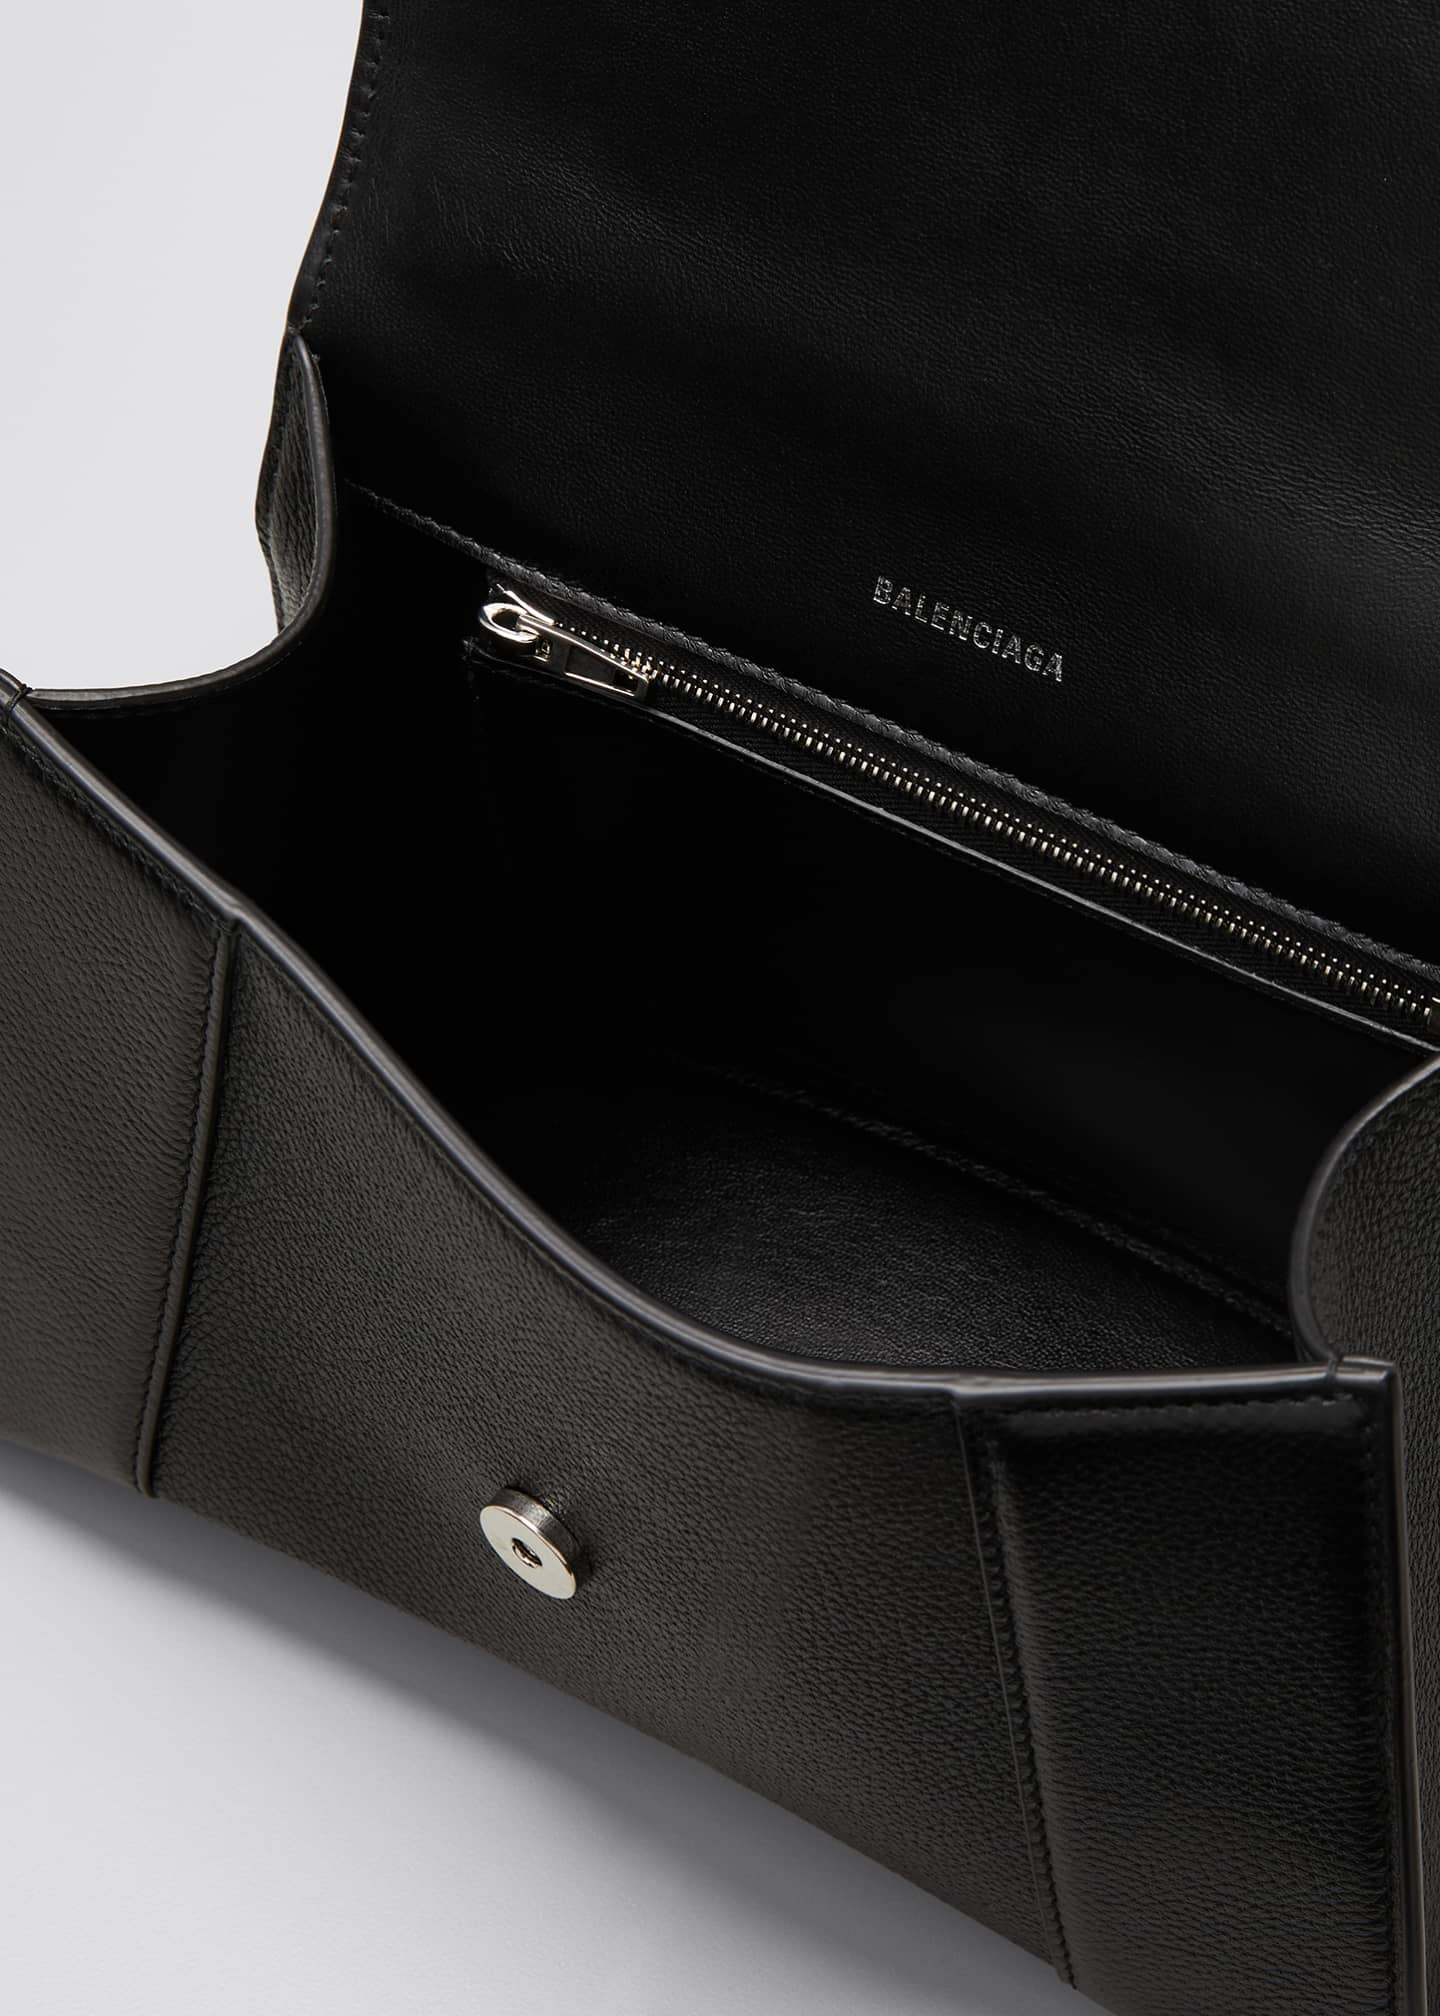 Image 4 of 5: Hourglass Small Calfskin Top-Handle Bag